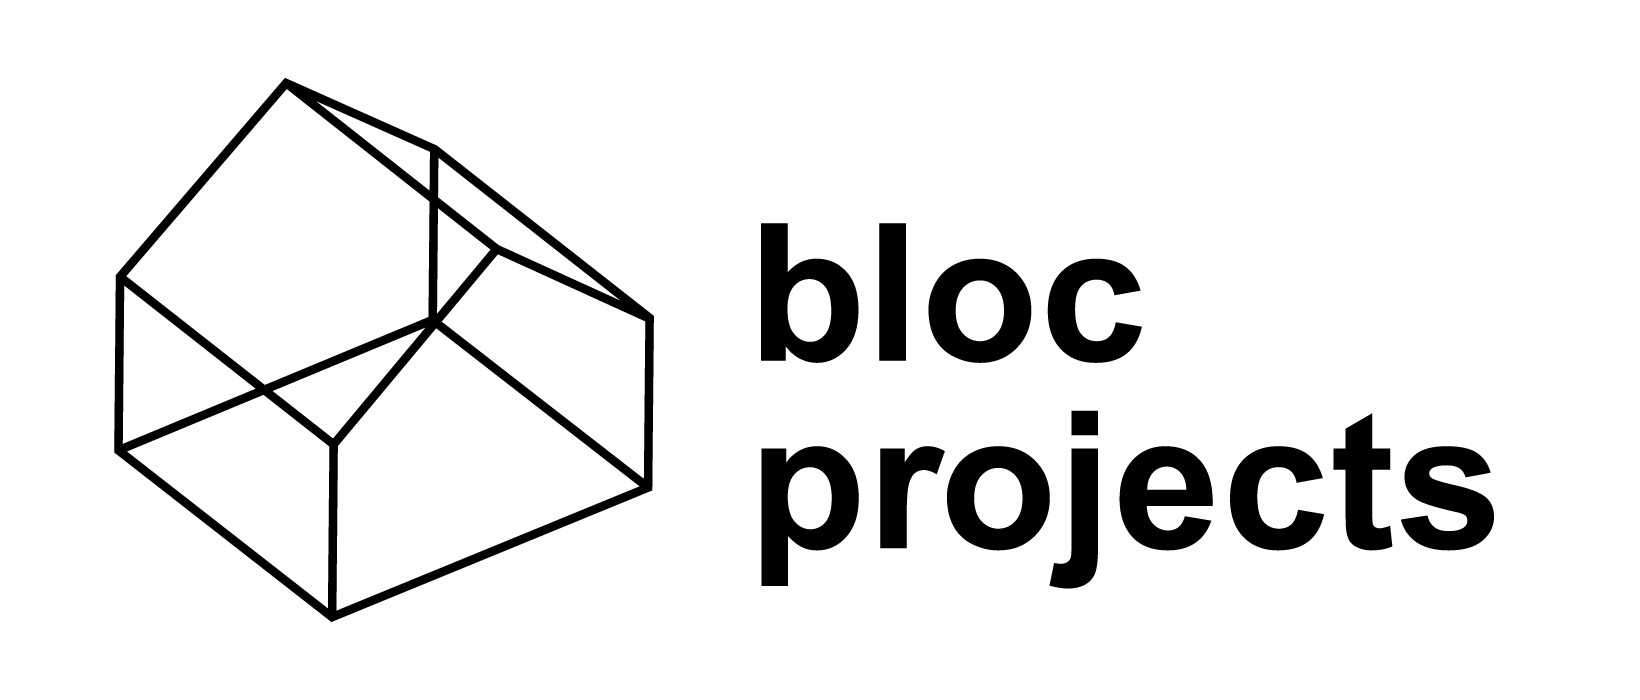 bloc-projects-two-lines